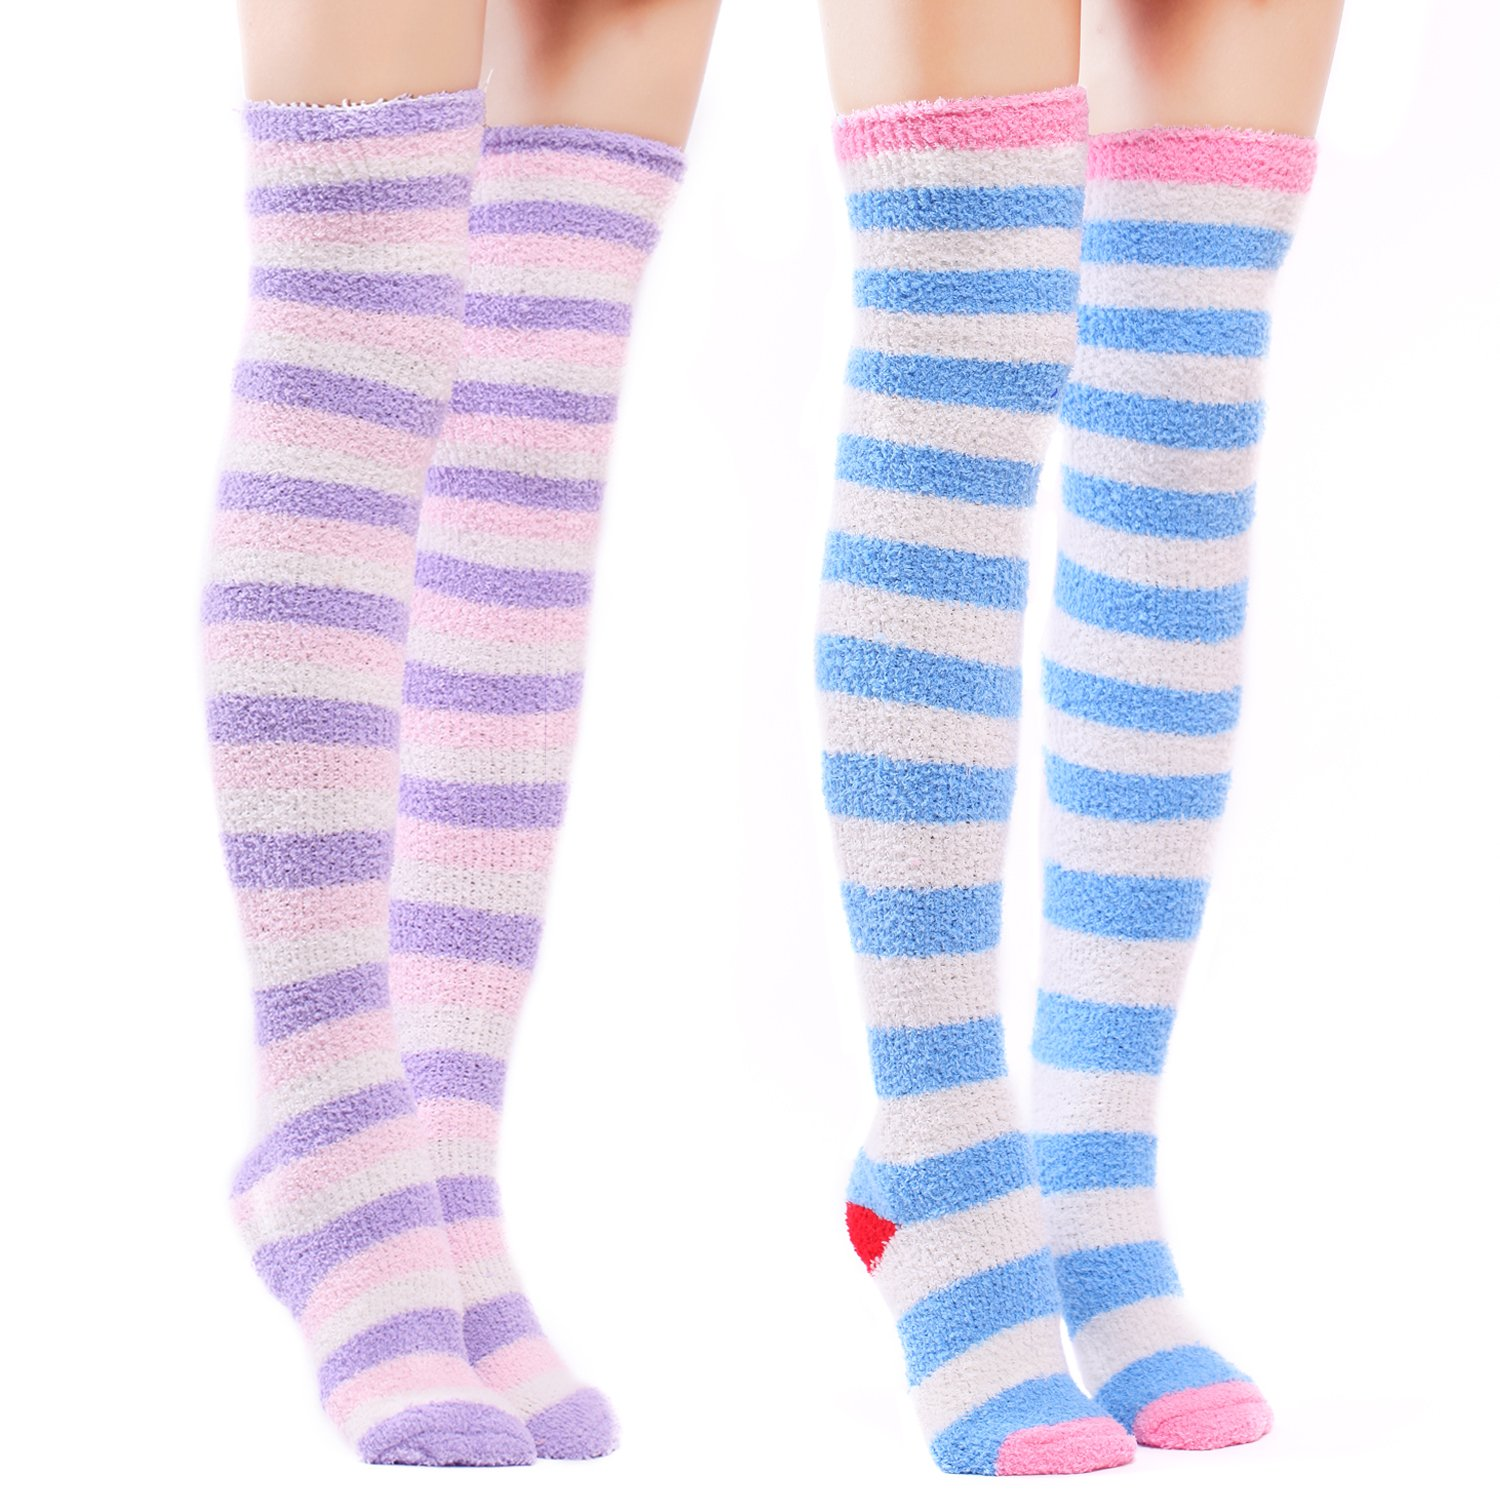 Littleforbig Cute Coral Fleece Thigh High Long Striped Socks 2 Pairs LA01-LB-SL604-S201